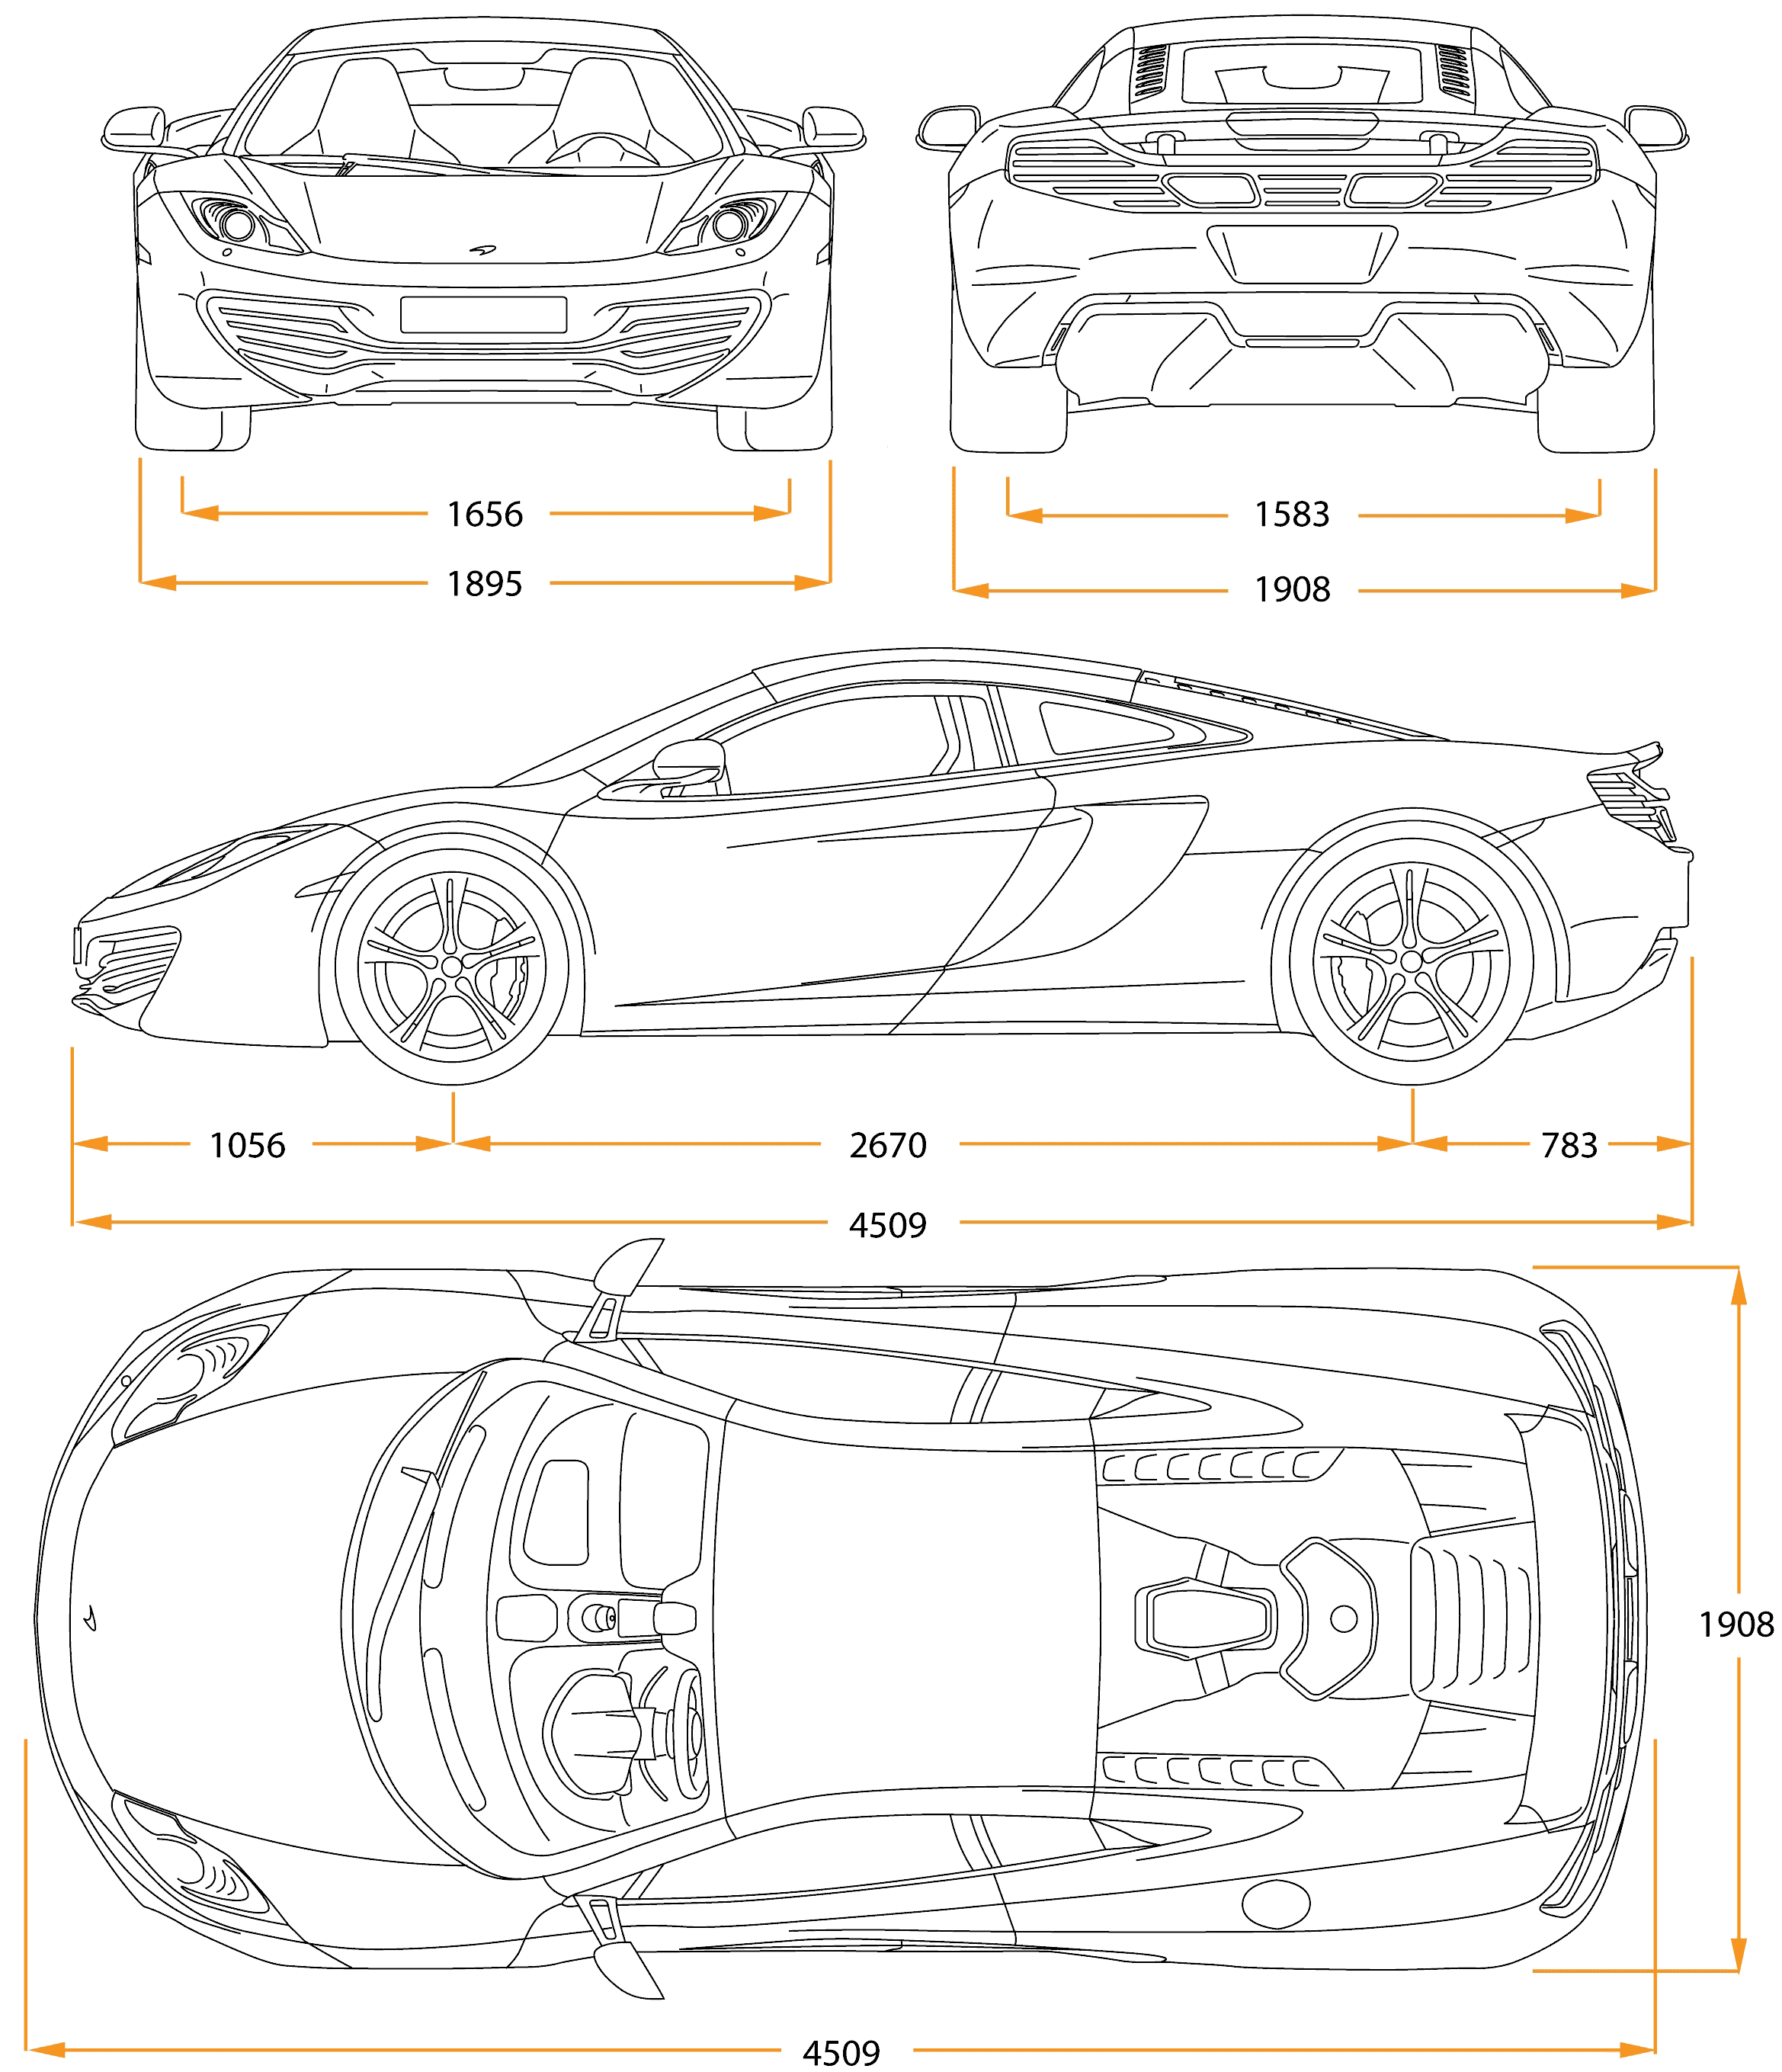 Mclaren 12c blueprint vehicle design pinterest mclaren 12c mclaren blueprints vector drawings clipart and pdf templates malvernweather Image collections